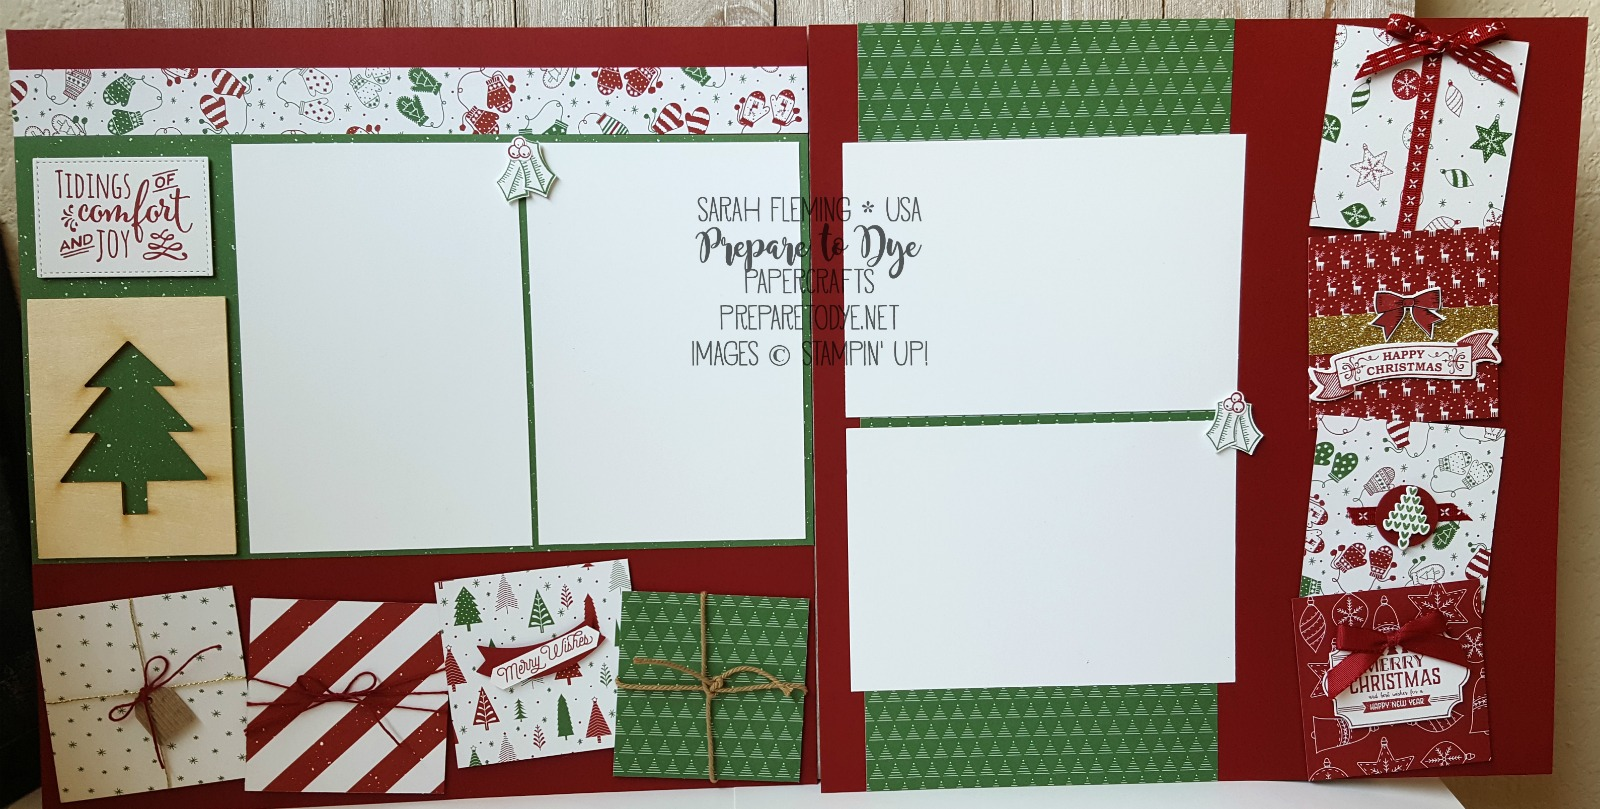 Stampin' Up! scrapbook page with Be Merry paper, Christmas Pines, Holly Berry Happiness, Labels to Love, Oh What Fun, Smitten Mittens, Seasonal Bells - two page layout - Sarah Fleming - Prepare to Dye Papercrafts